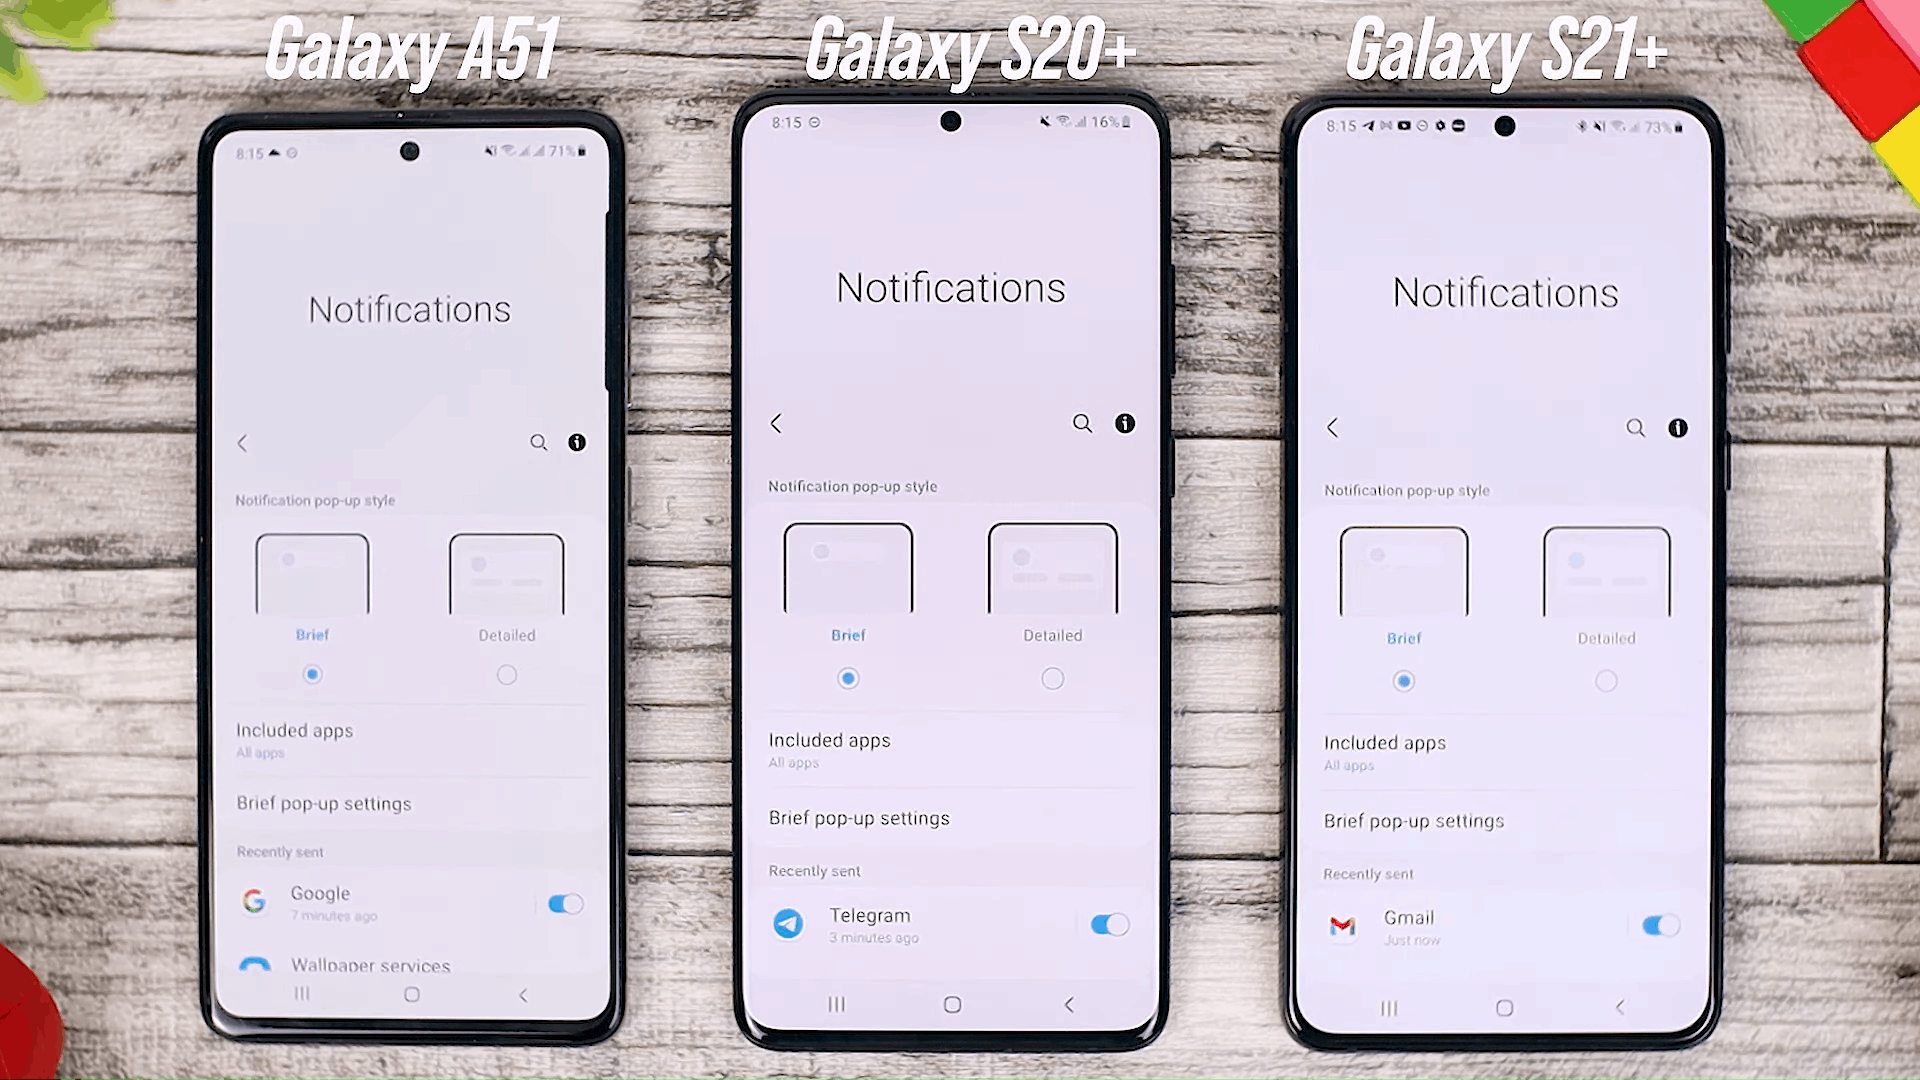 Brief Notification Option - One UI 3.0 features of Samsung Galaxy A51 and its comparison with the Galaxy S20+ and One UI 3.1 on the Galaxy S21+